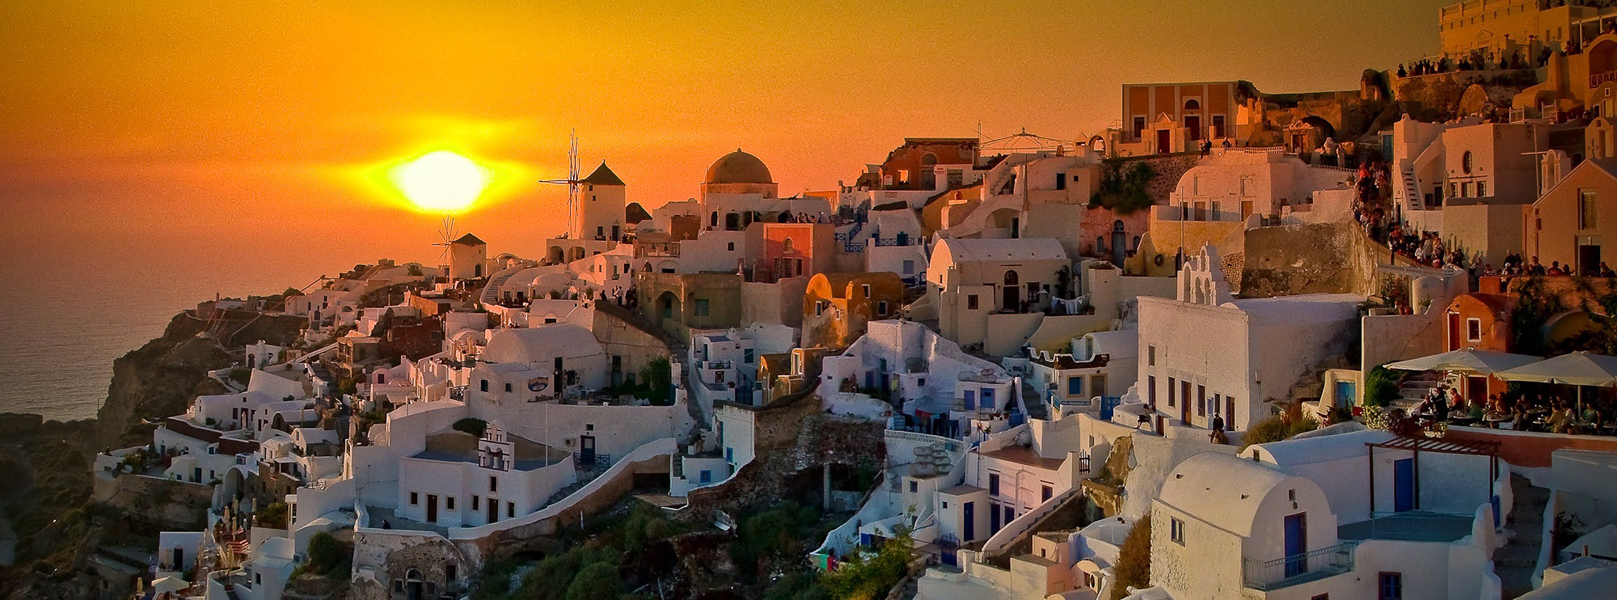 greek_oia_sunset1